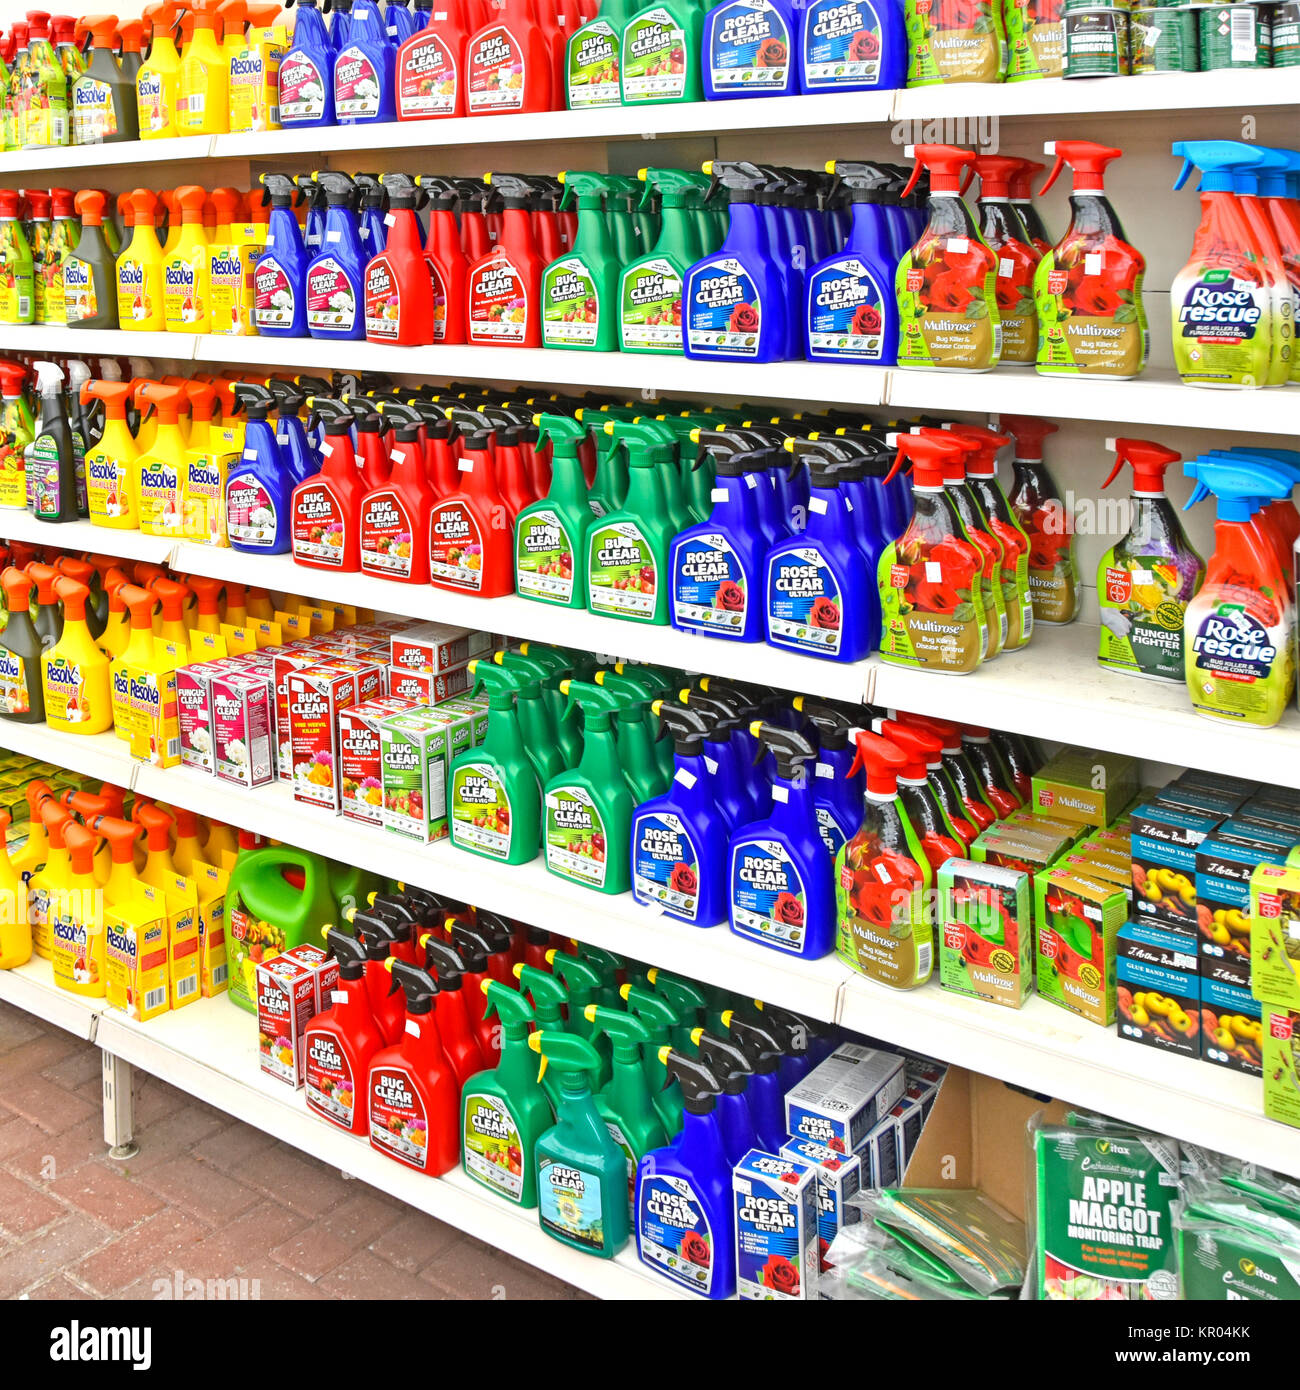 Garden centre shelf gardening chemical plastic spray bottles of weedkillers pest control of bugs general garden - Stock Image